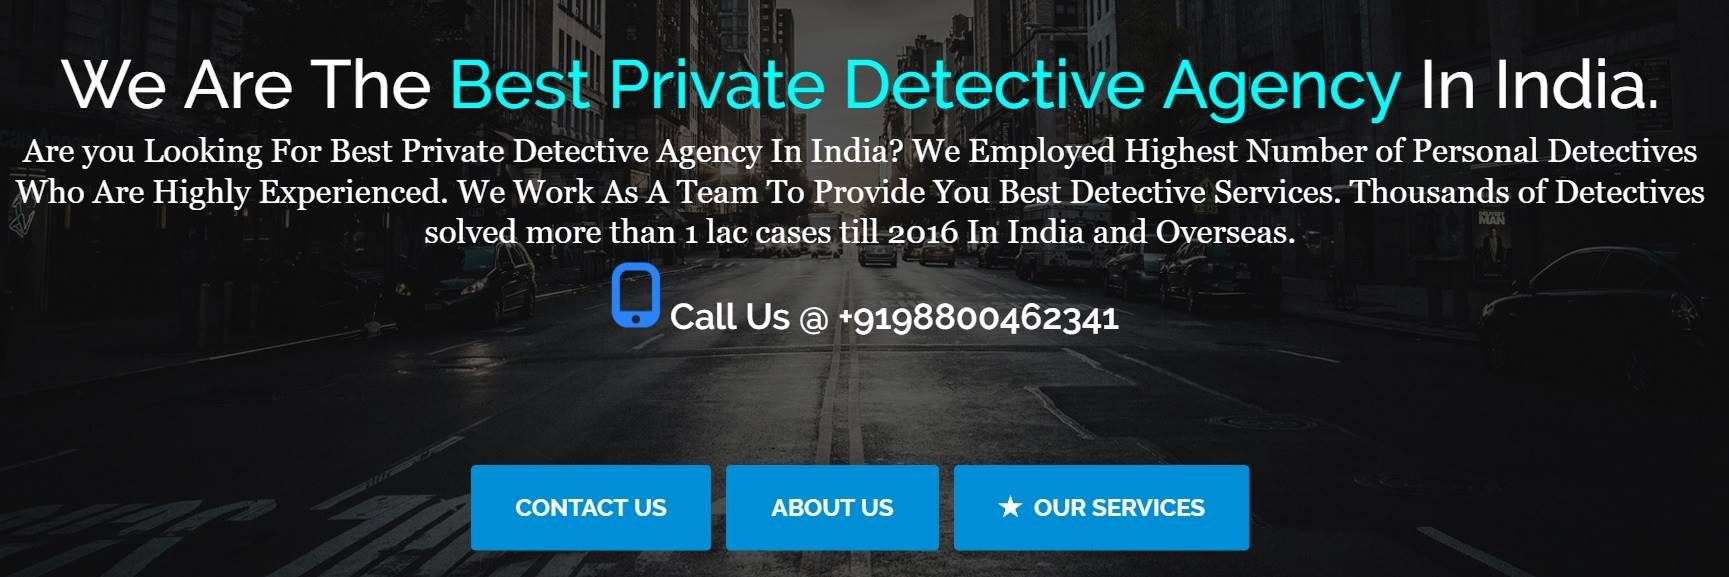 Detective Agency In India - Private Detective Services